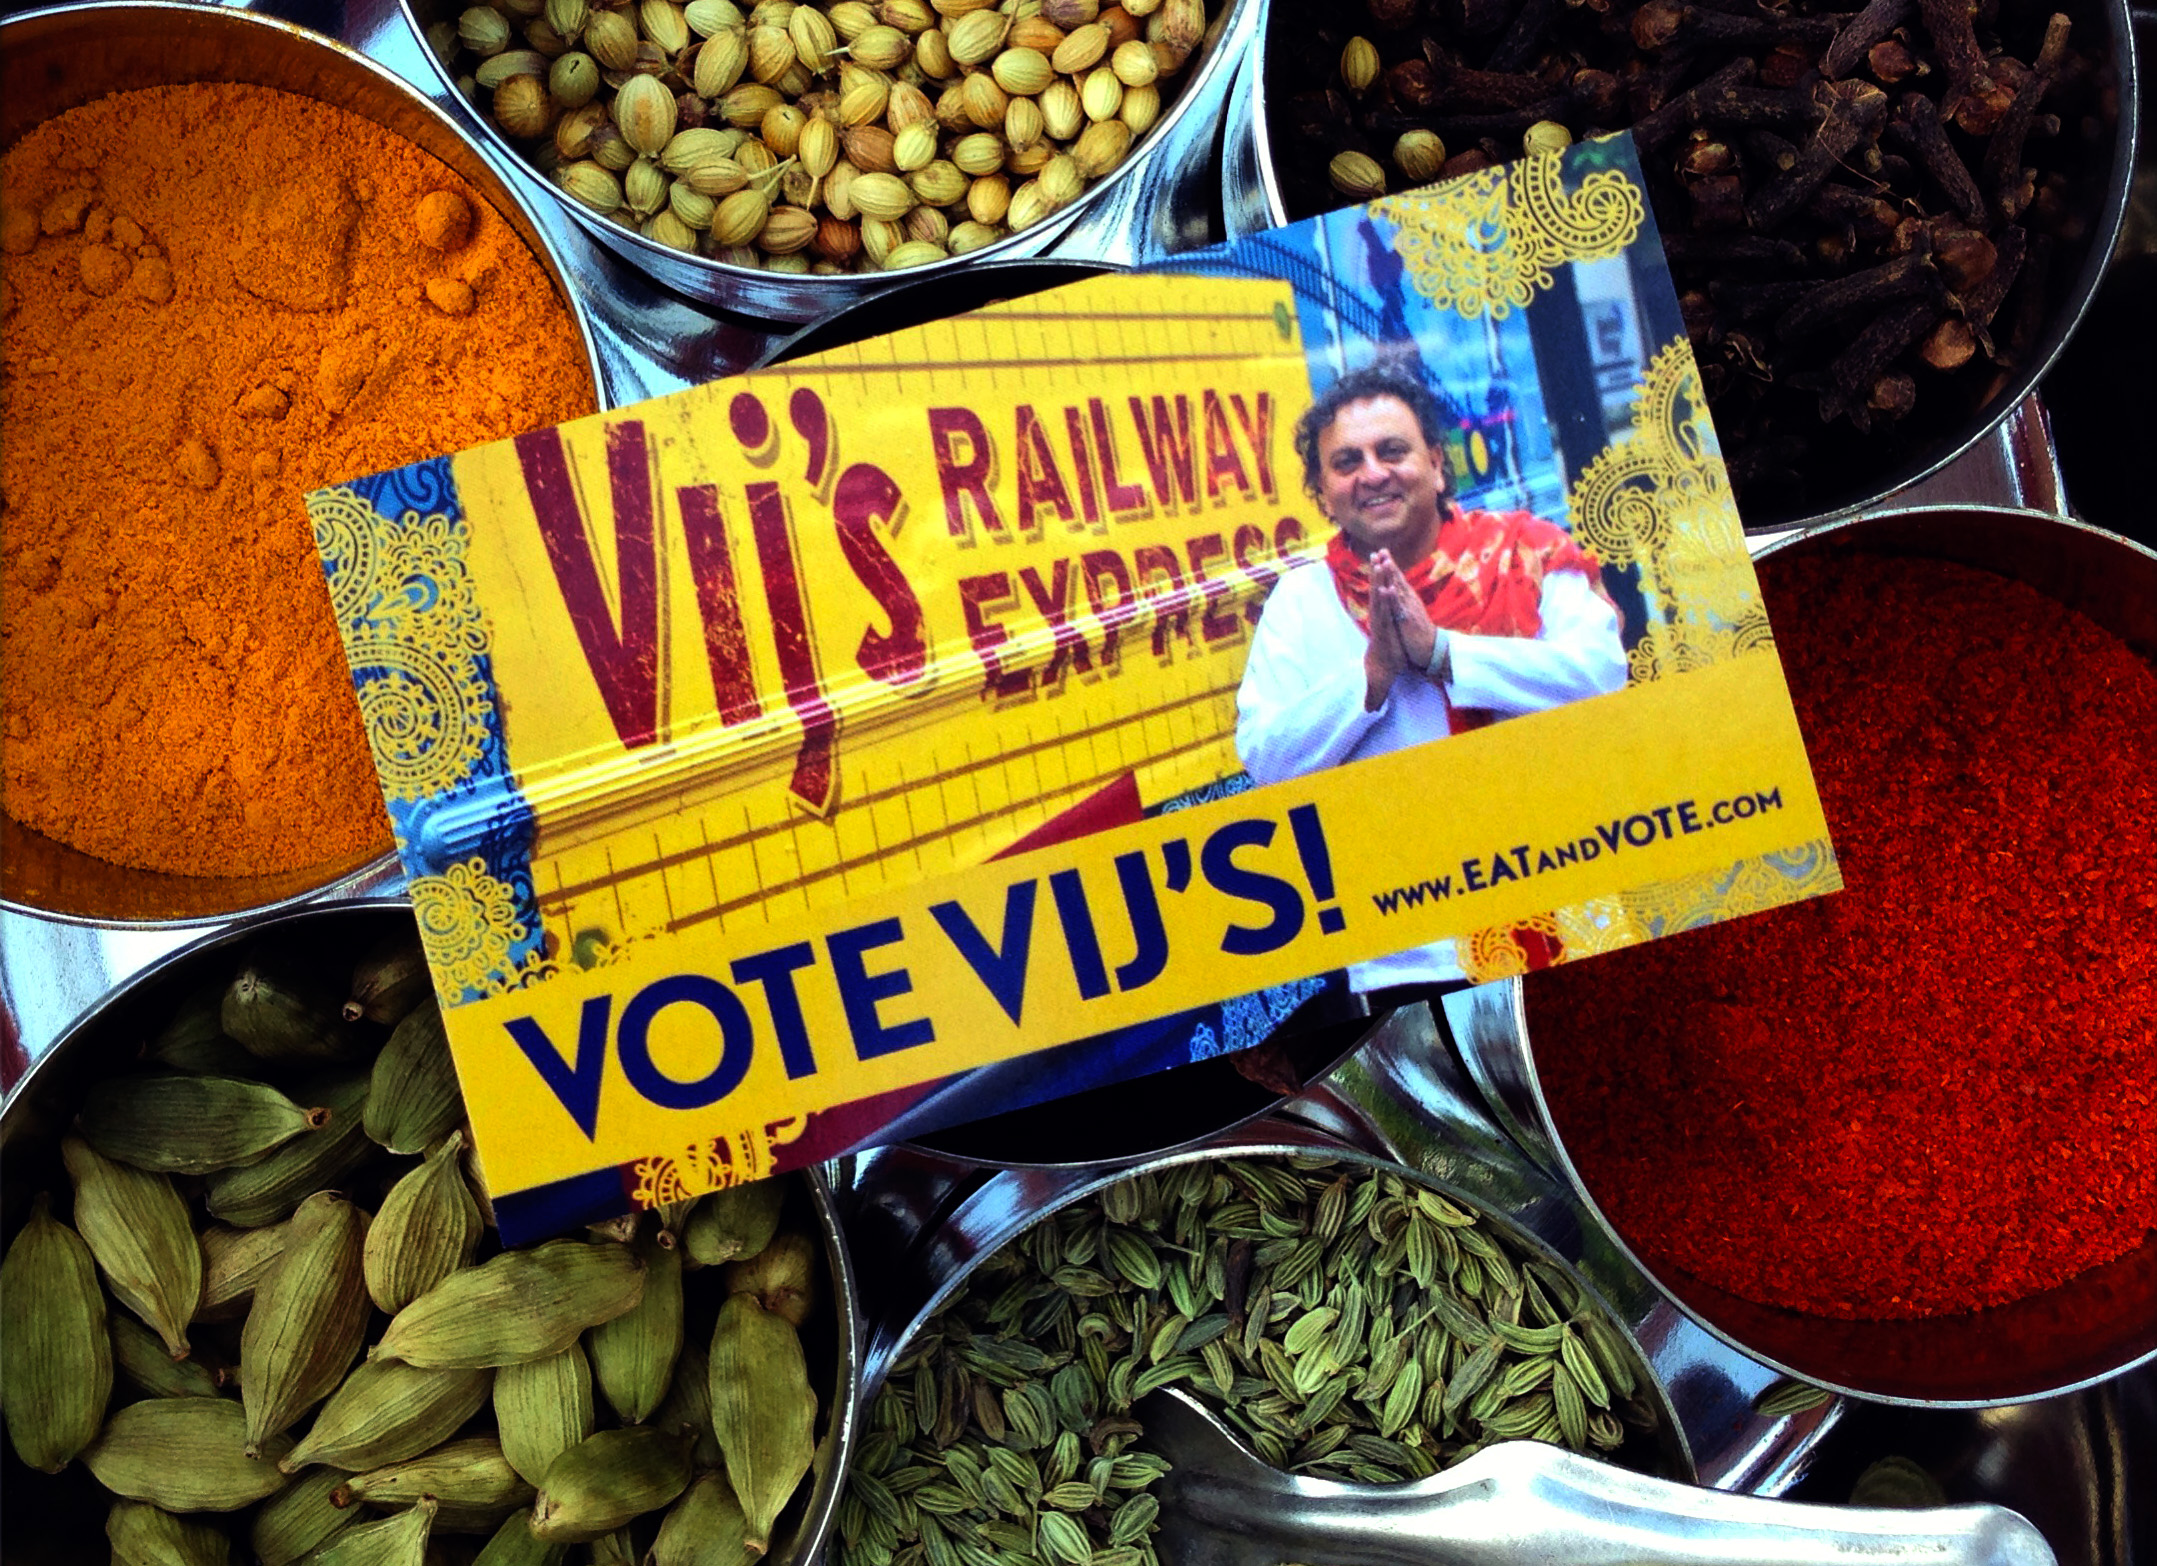 Vij's Railway Express gets out the vote